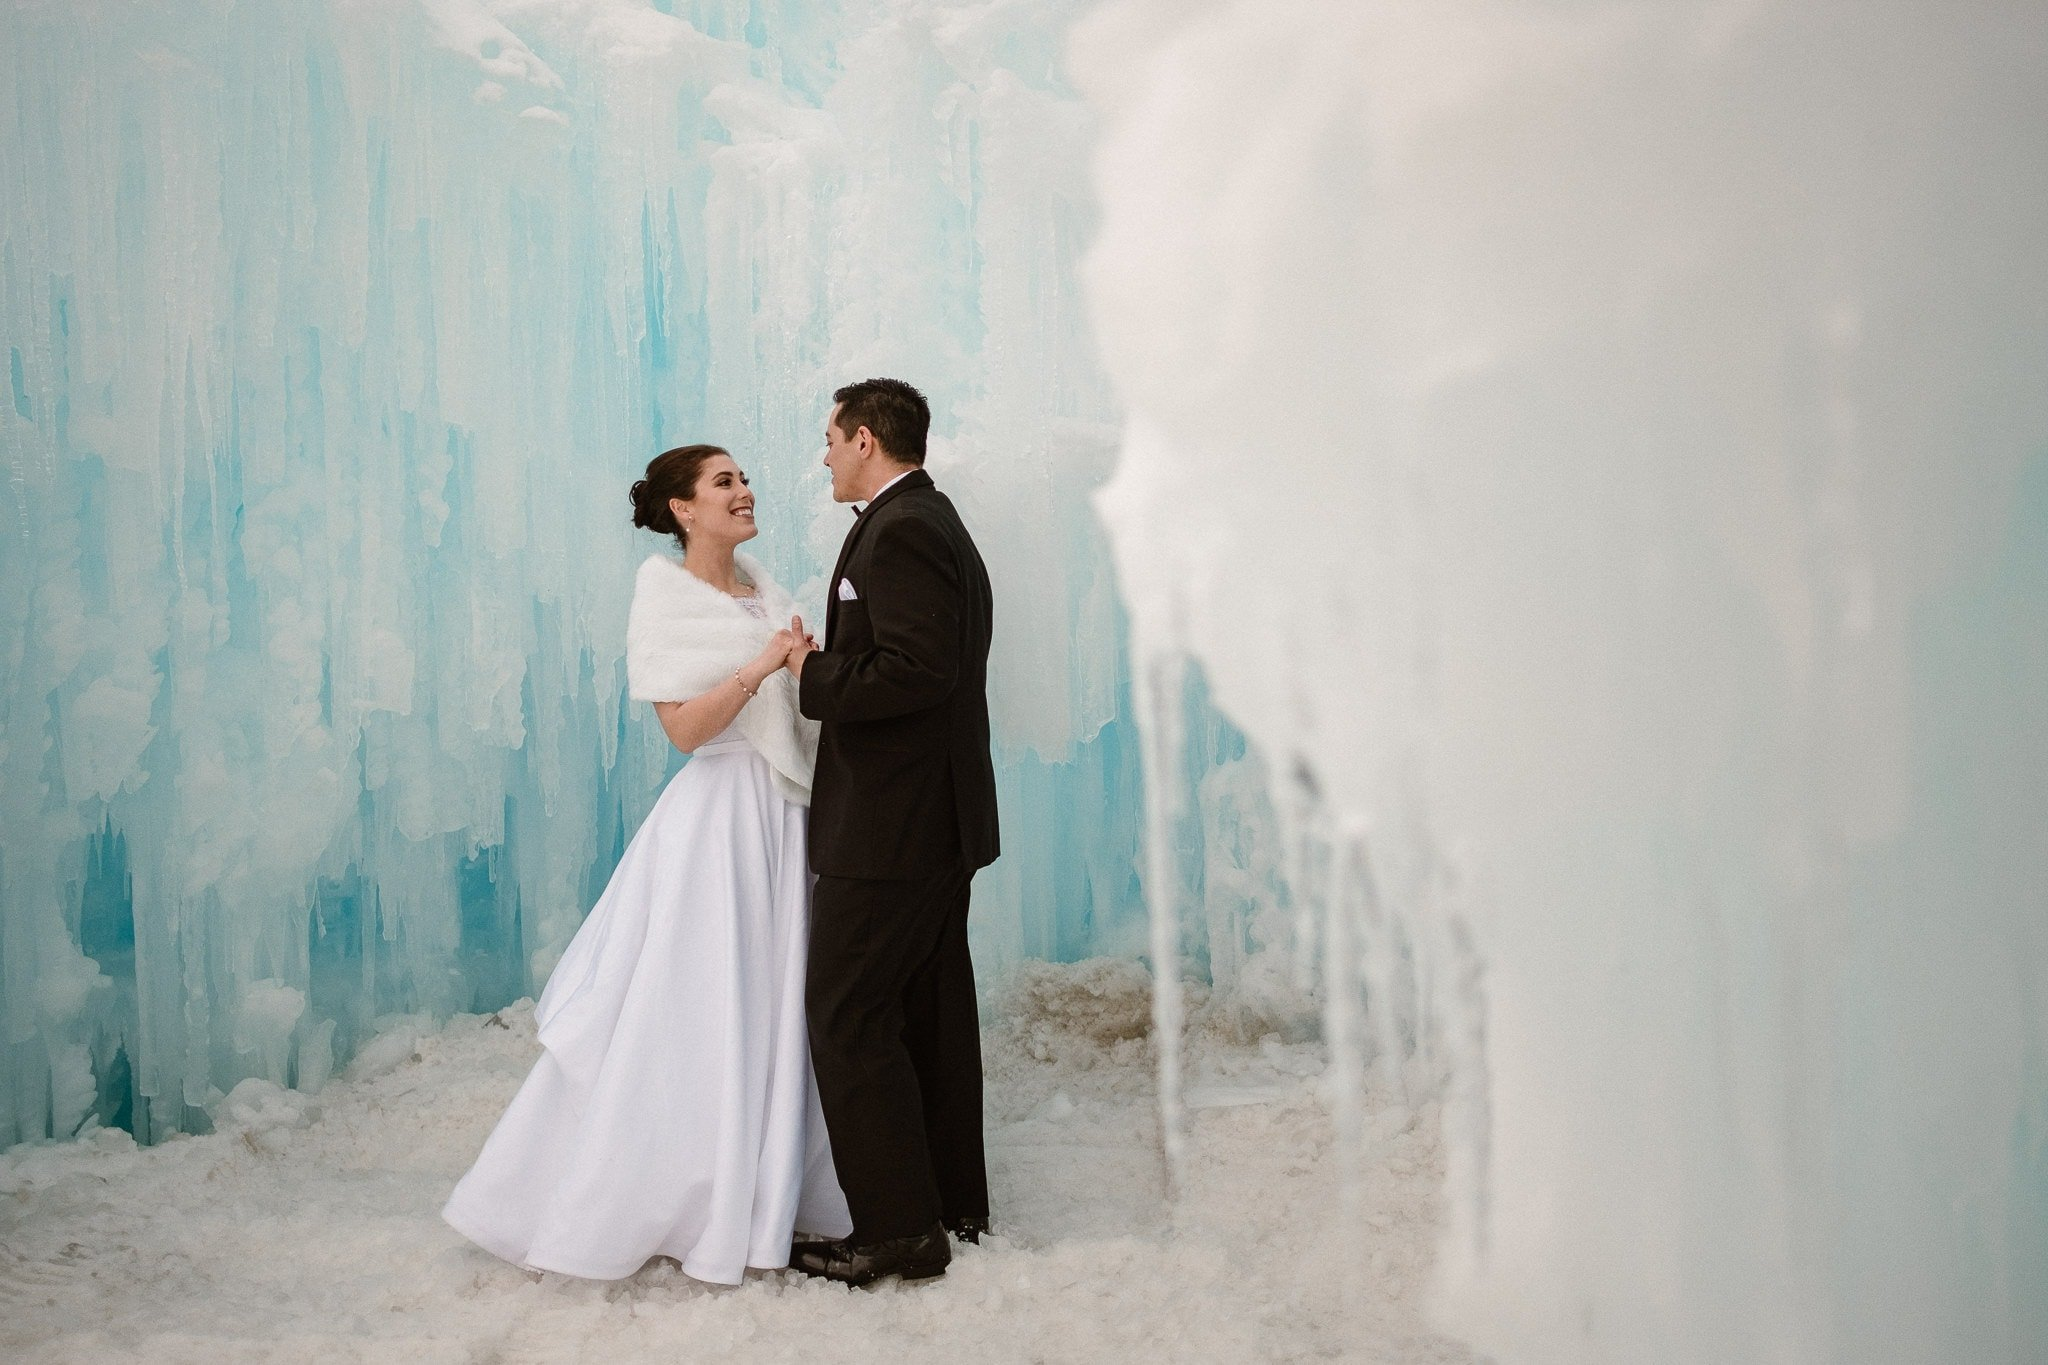 Ice Castles wedding photography, Dillon Colorado winter elopement, bride and groom inside ice castle